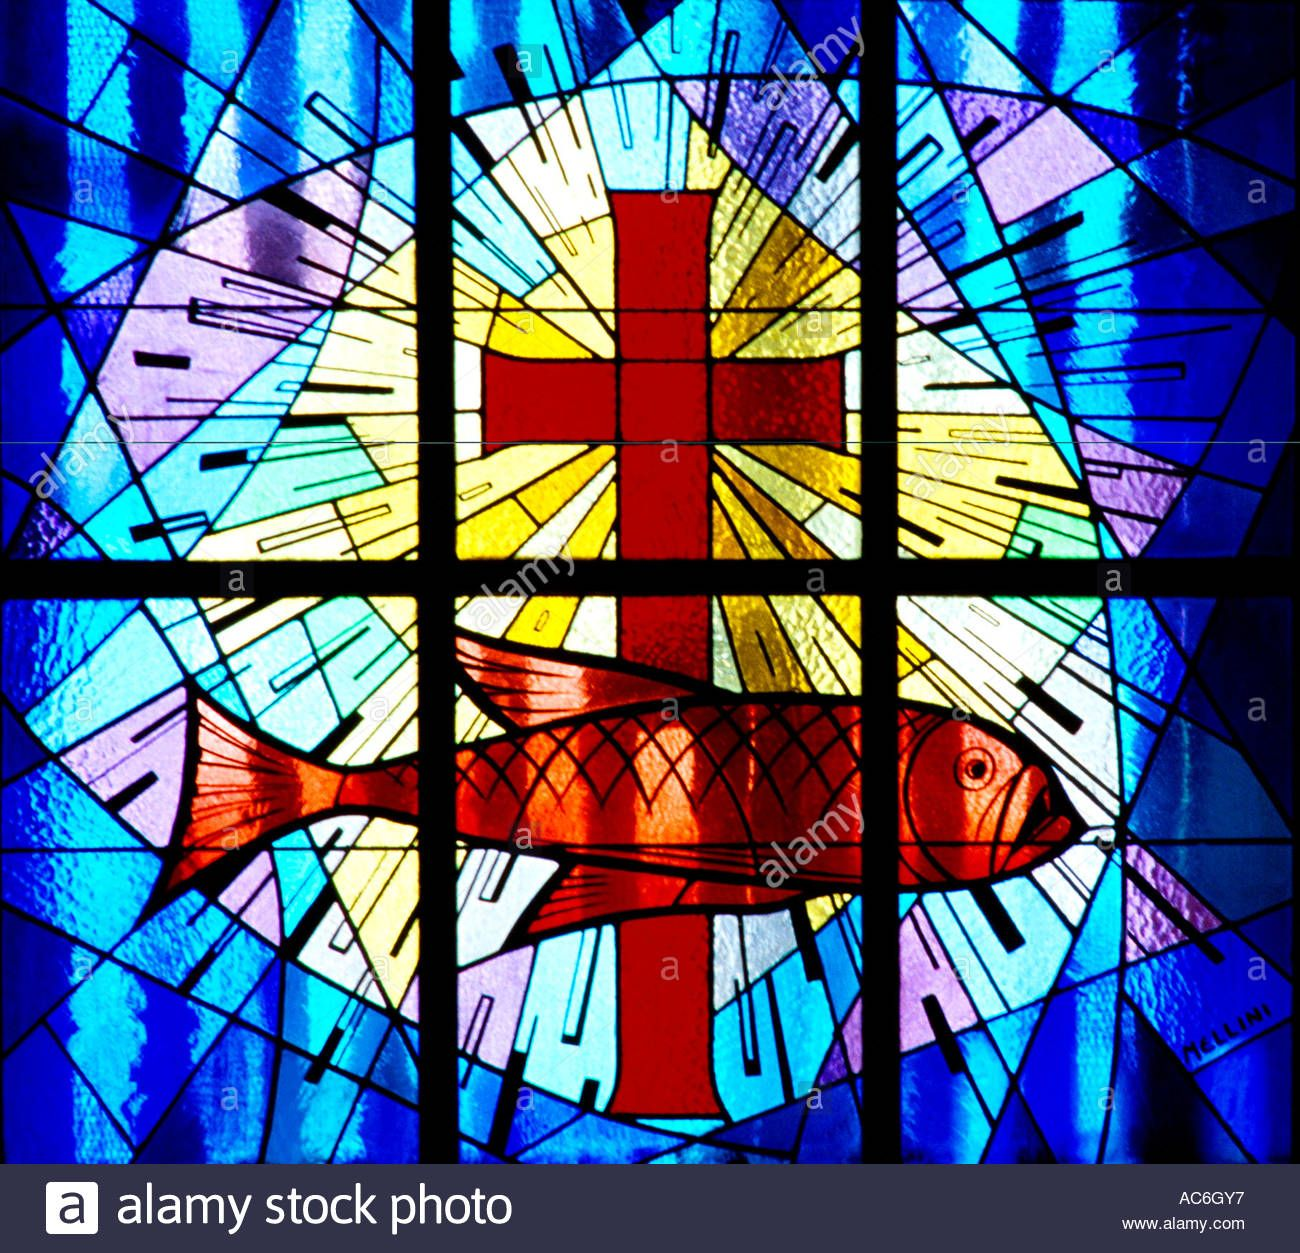 Dubai UAE St Marys Catholic Church Stained Glass Window Symbols Of Fish And Cross